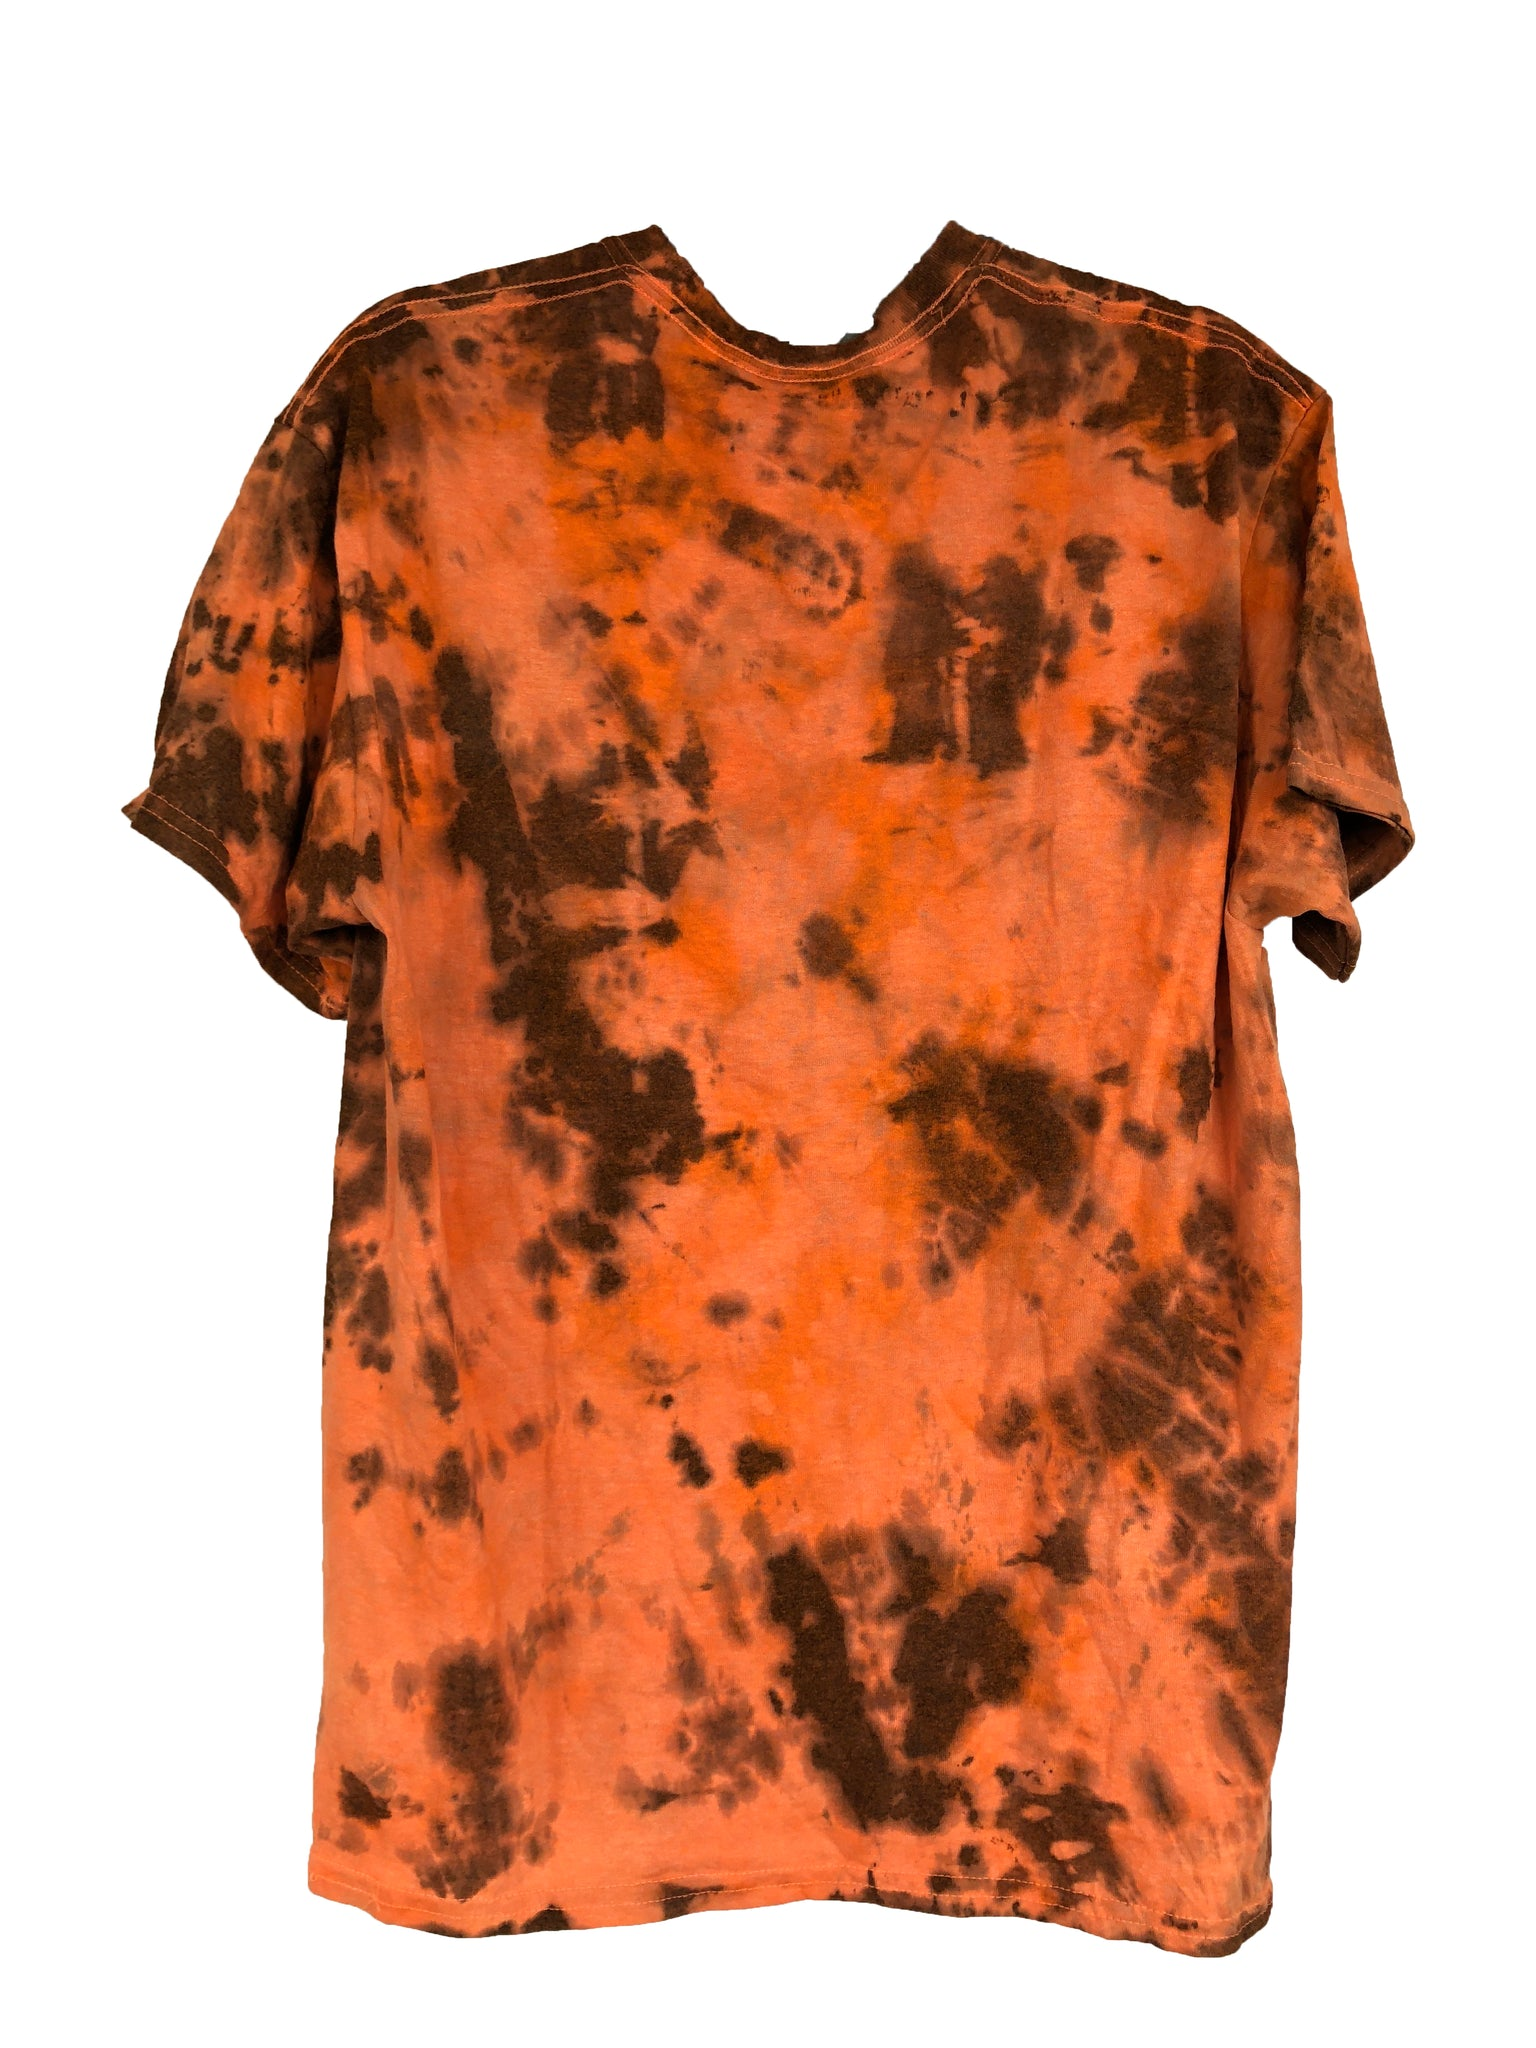 Orange Tie-Dyed T-Shirt - Adult Large